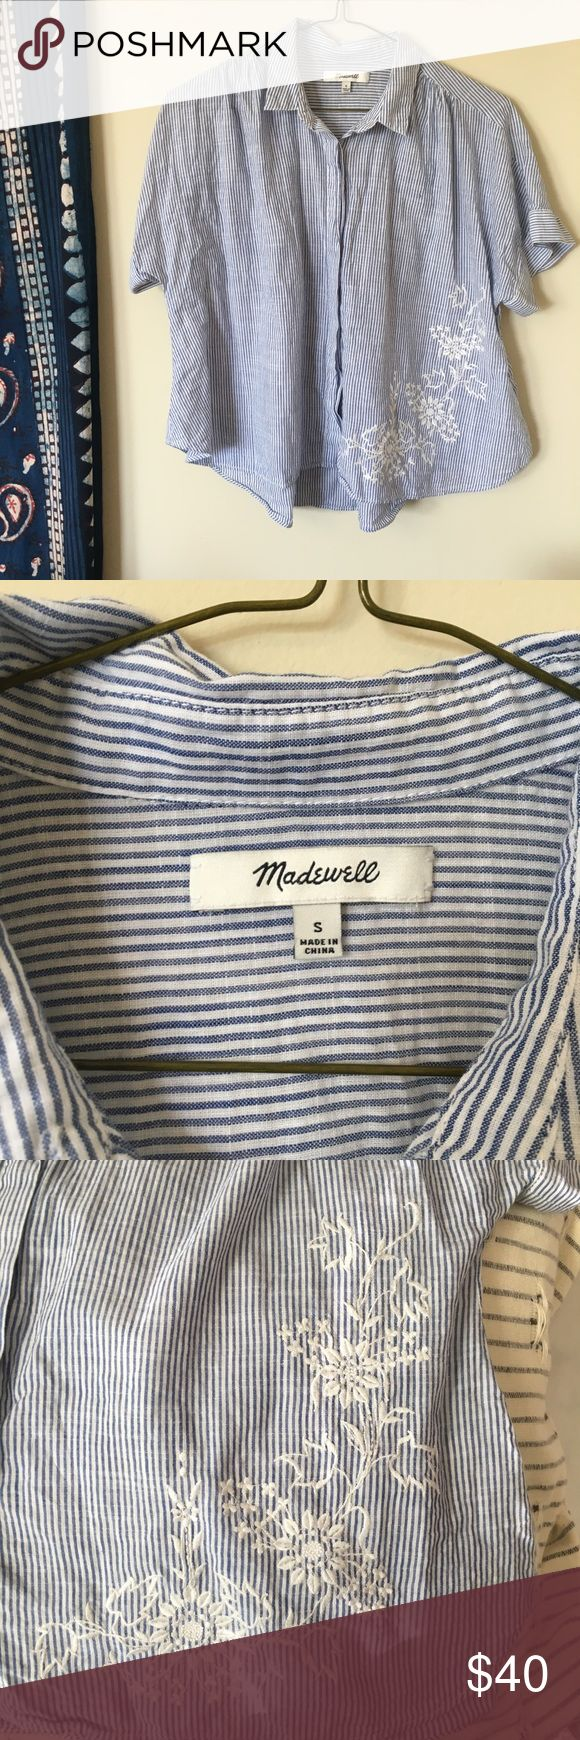 Madewell Embroidered Hilltop Shirt An easy, airy shirt with a shirred back and softly curved hem. Just a touch cropped, this striped button-down has pretty floral embroidery inspired by the handwork on a Victorian table runner. Madewell Tops Button Down Shirts